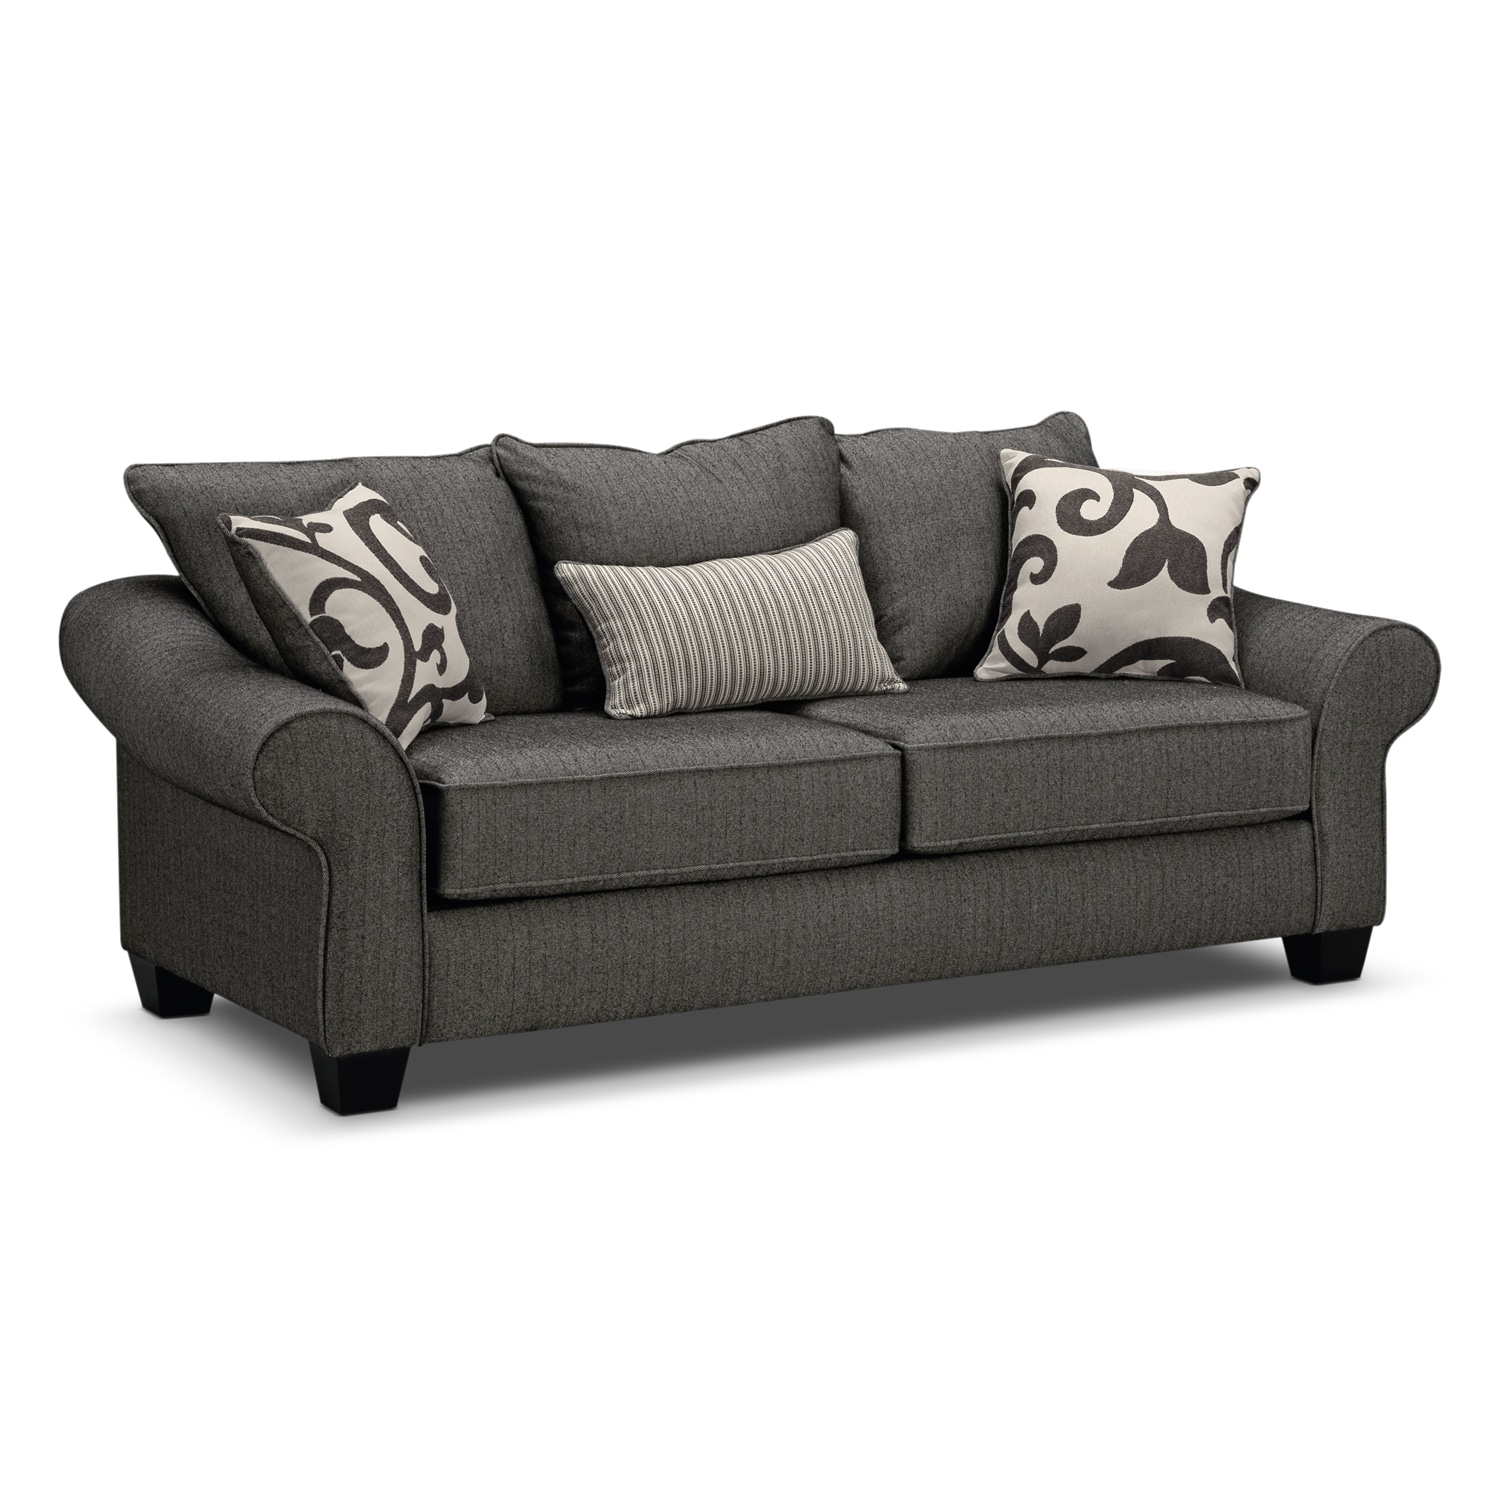 living room furniture colette sofa gray